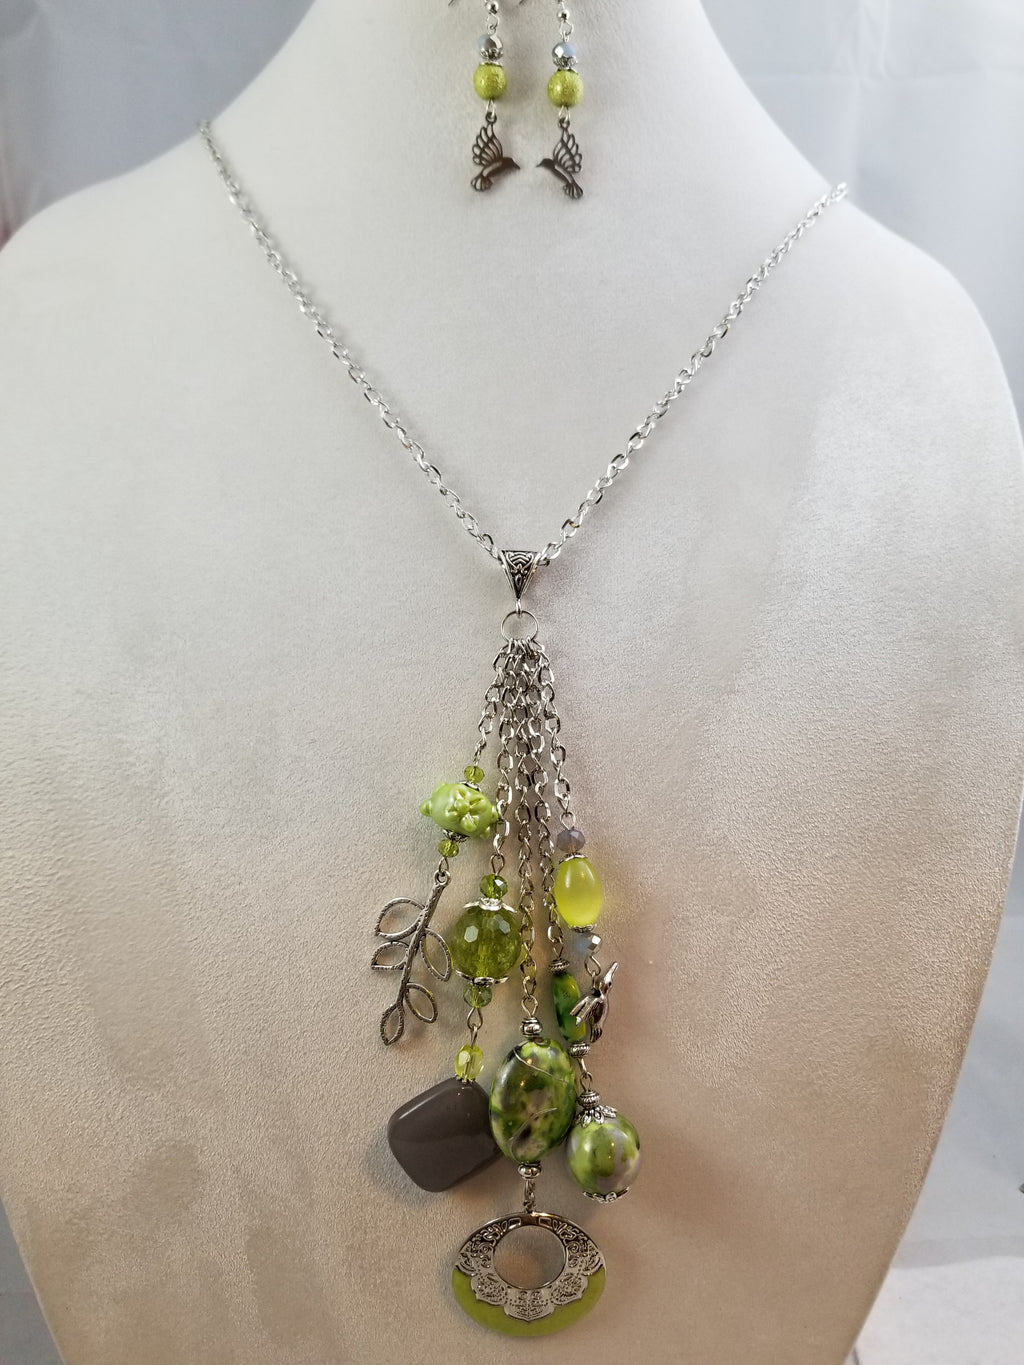 Green Hummers Necklace with Earrings